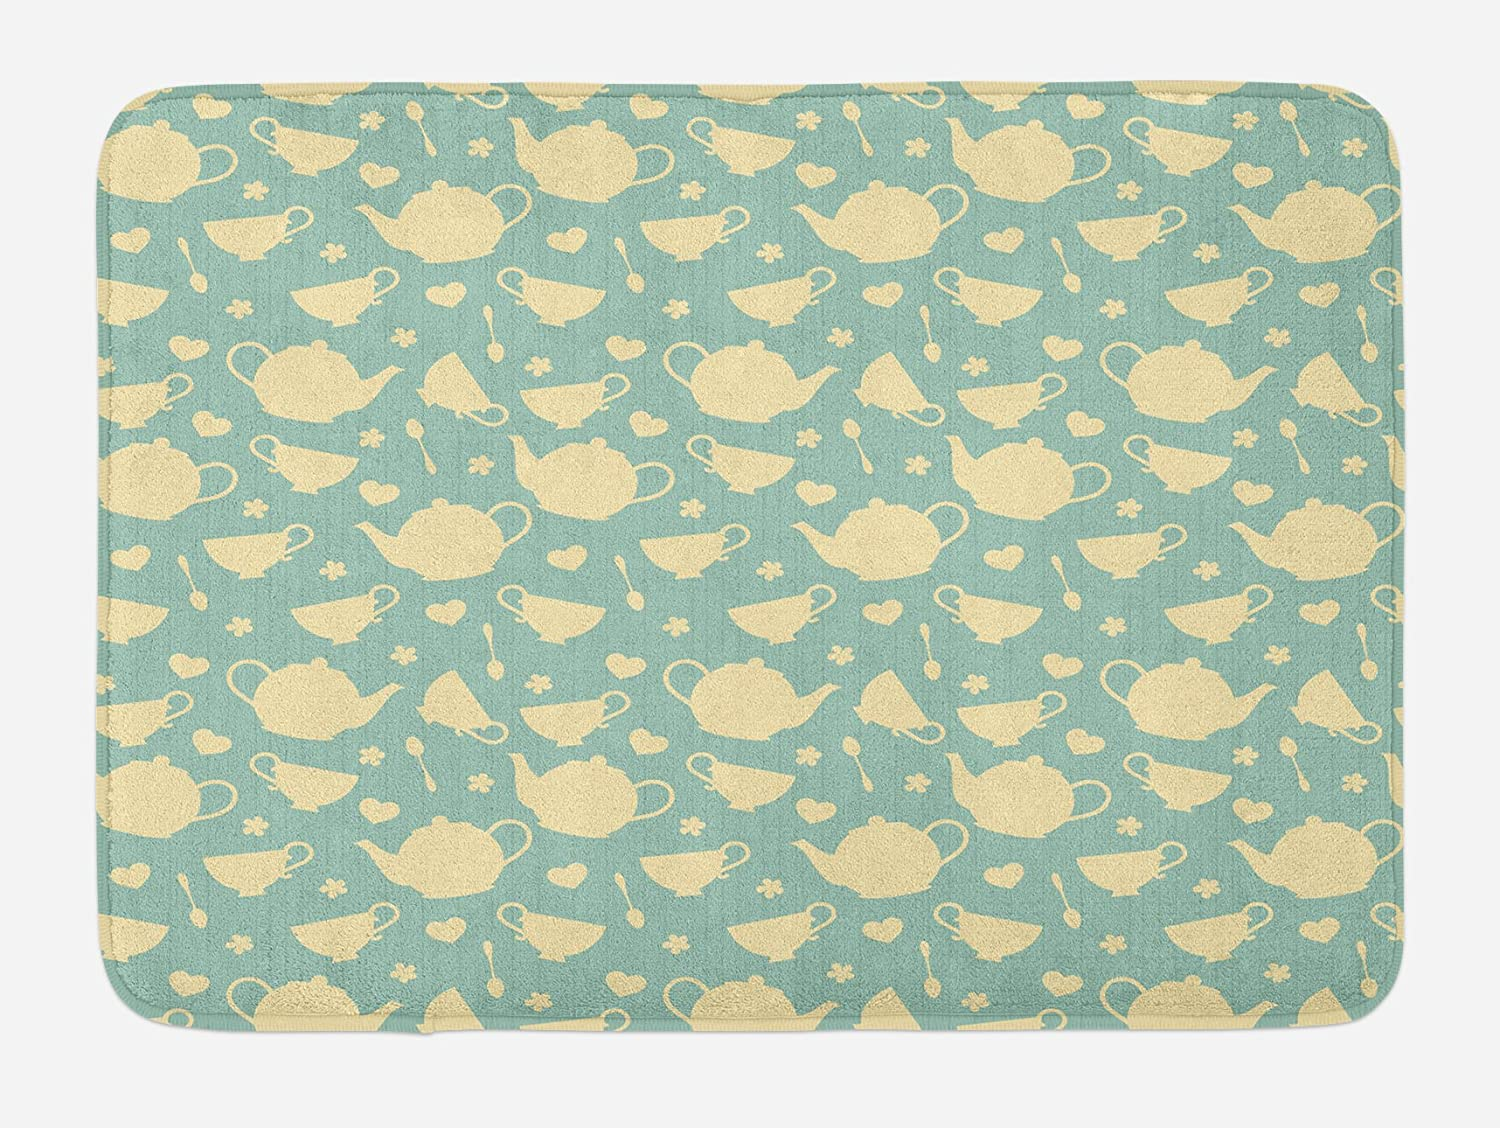 Ambesonne Tea Bath Mat, Tea Cup and Teapot Elements in Nostalgic British English Tradition Print, Plush Bathroom Decor Mat with Non Slip Backing, 29.5 X 17.5, Pale Yellow Turquoise